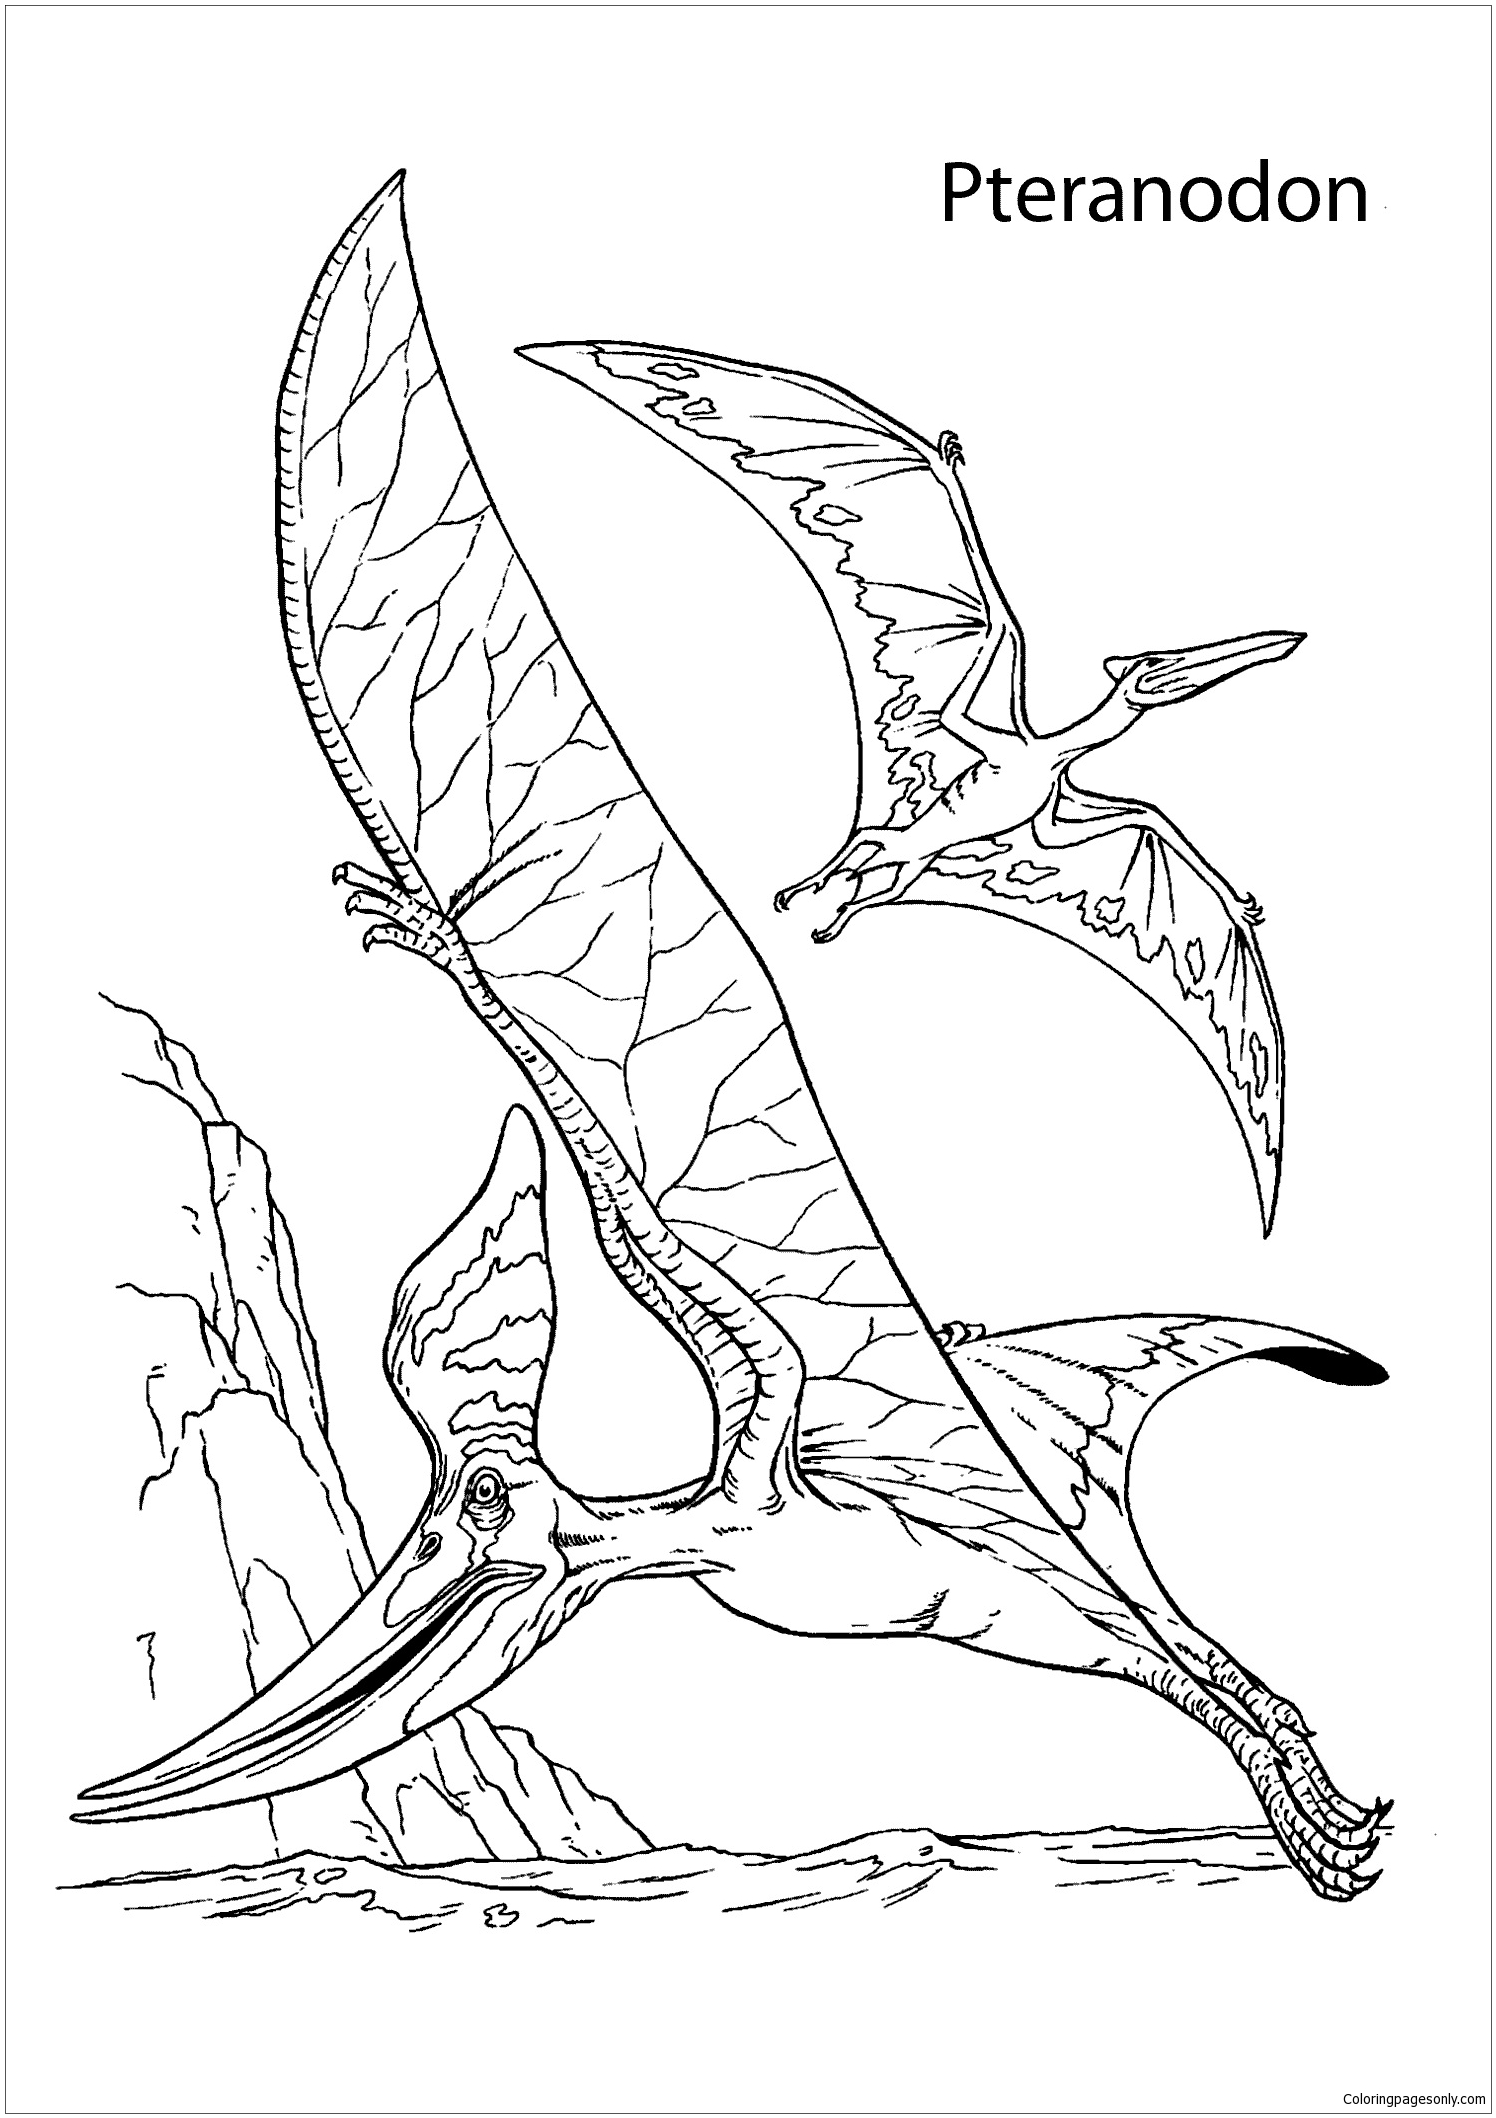 Two Pteranodons Dinosaurs Coloring Page